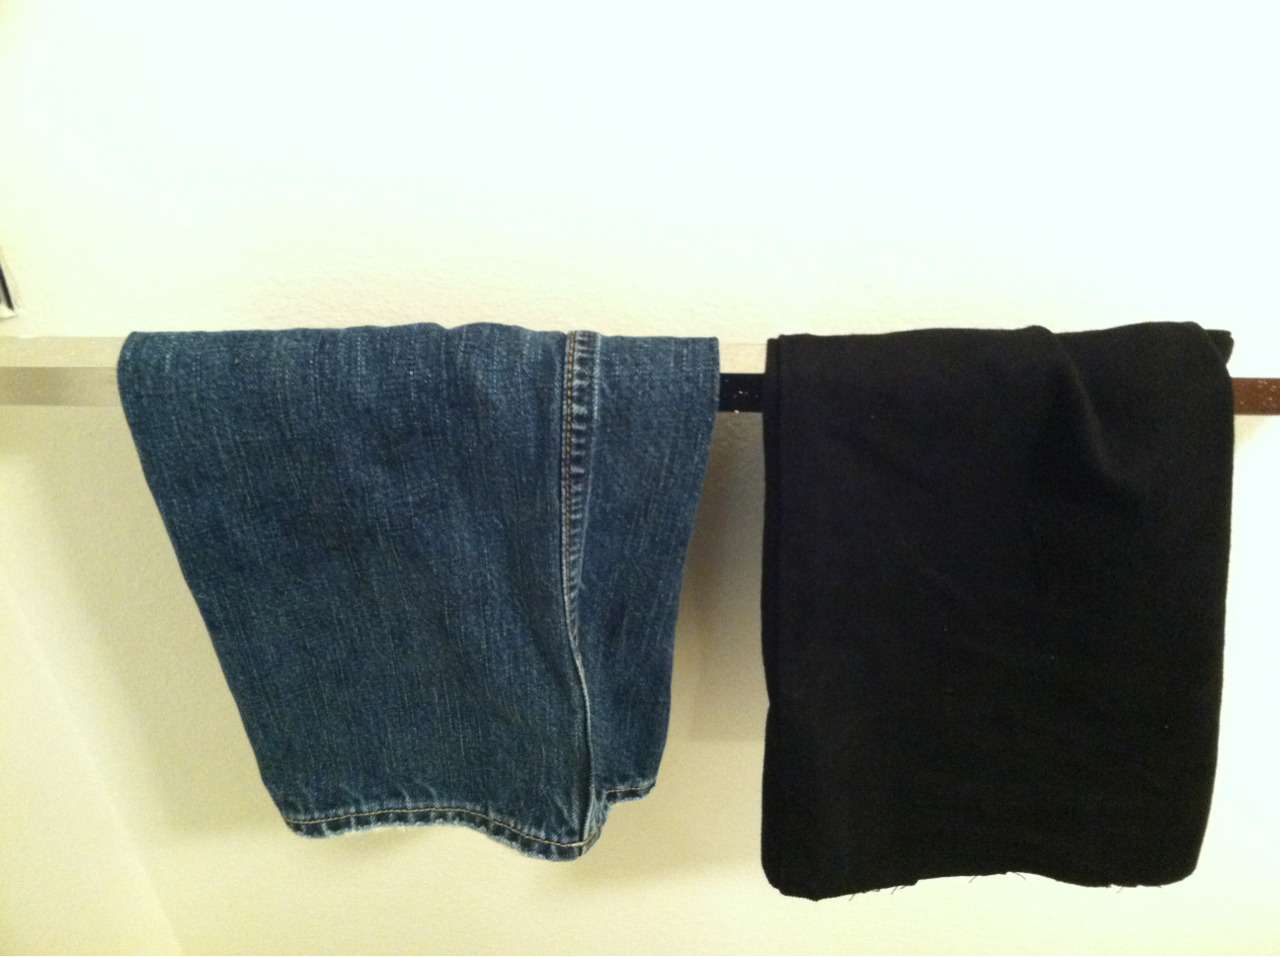 I'm using the legs from the jeans I cut up to make jorts as hand towels